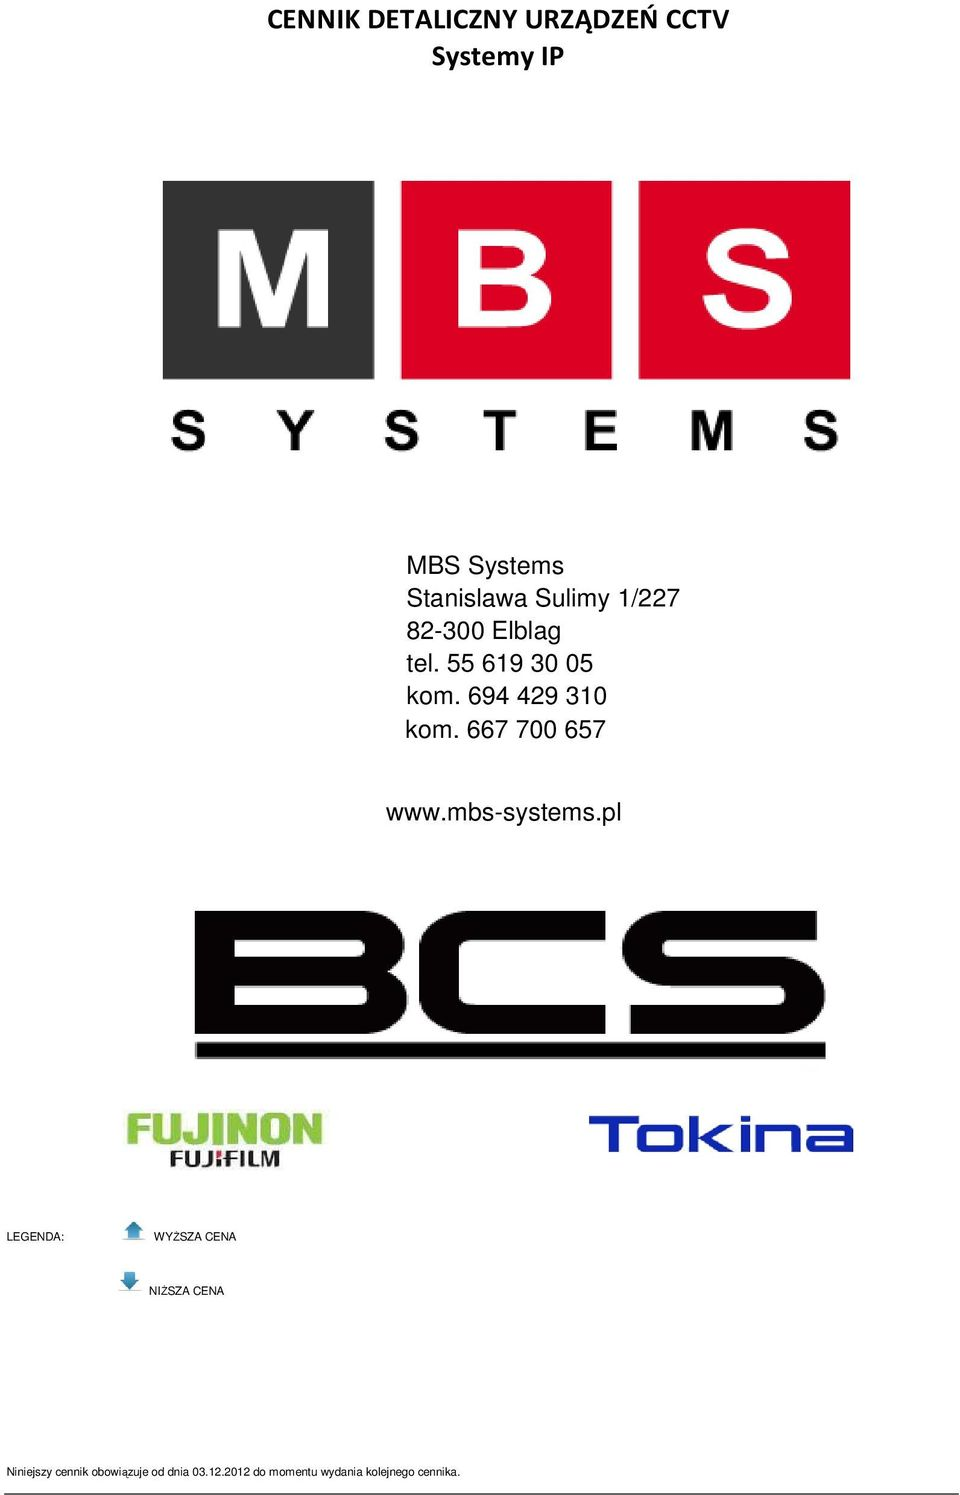 667 700 657 www.mbs-systems.